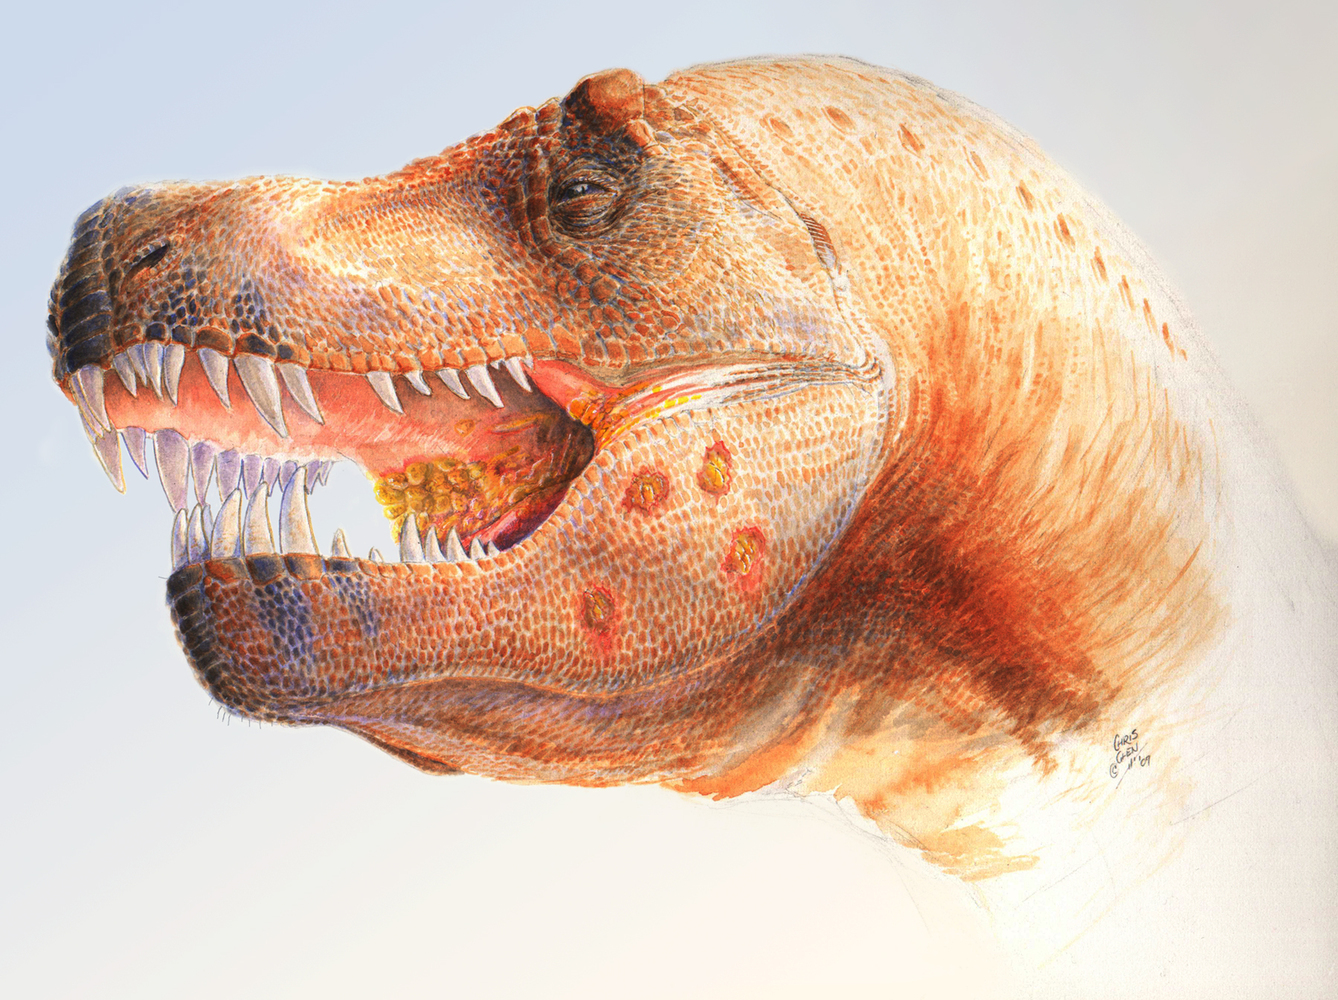 Trichomonas-like infection of T. rex